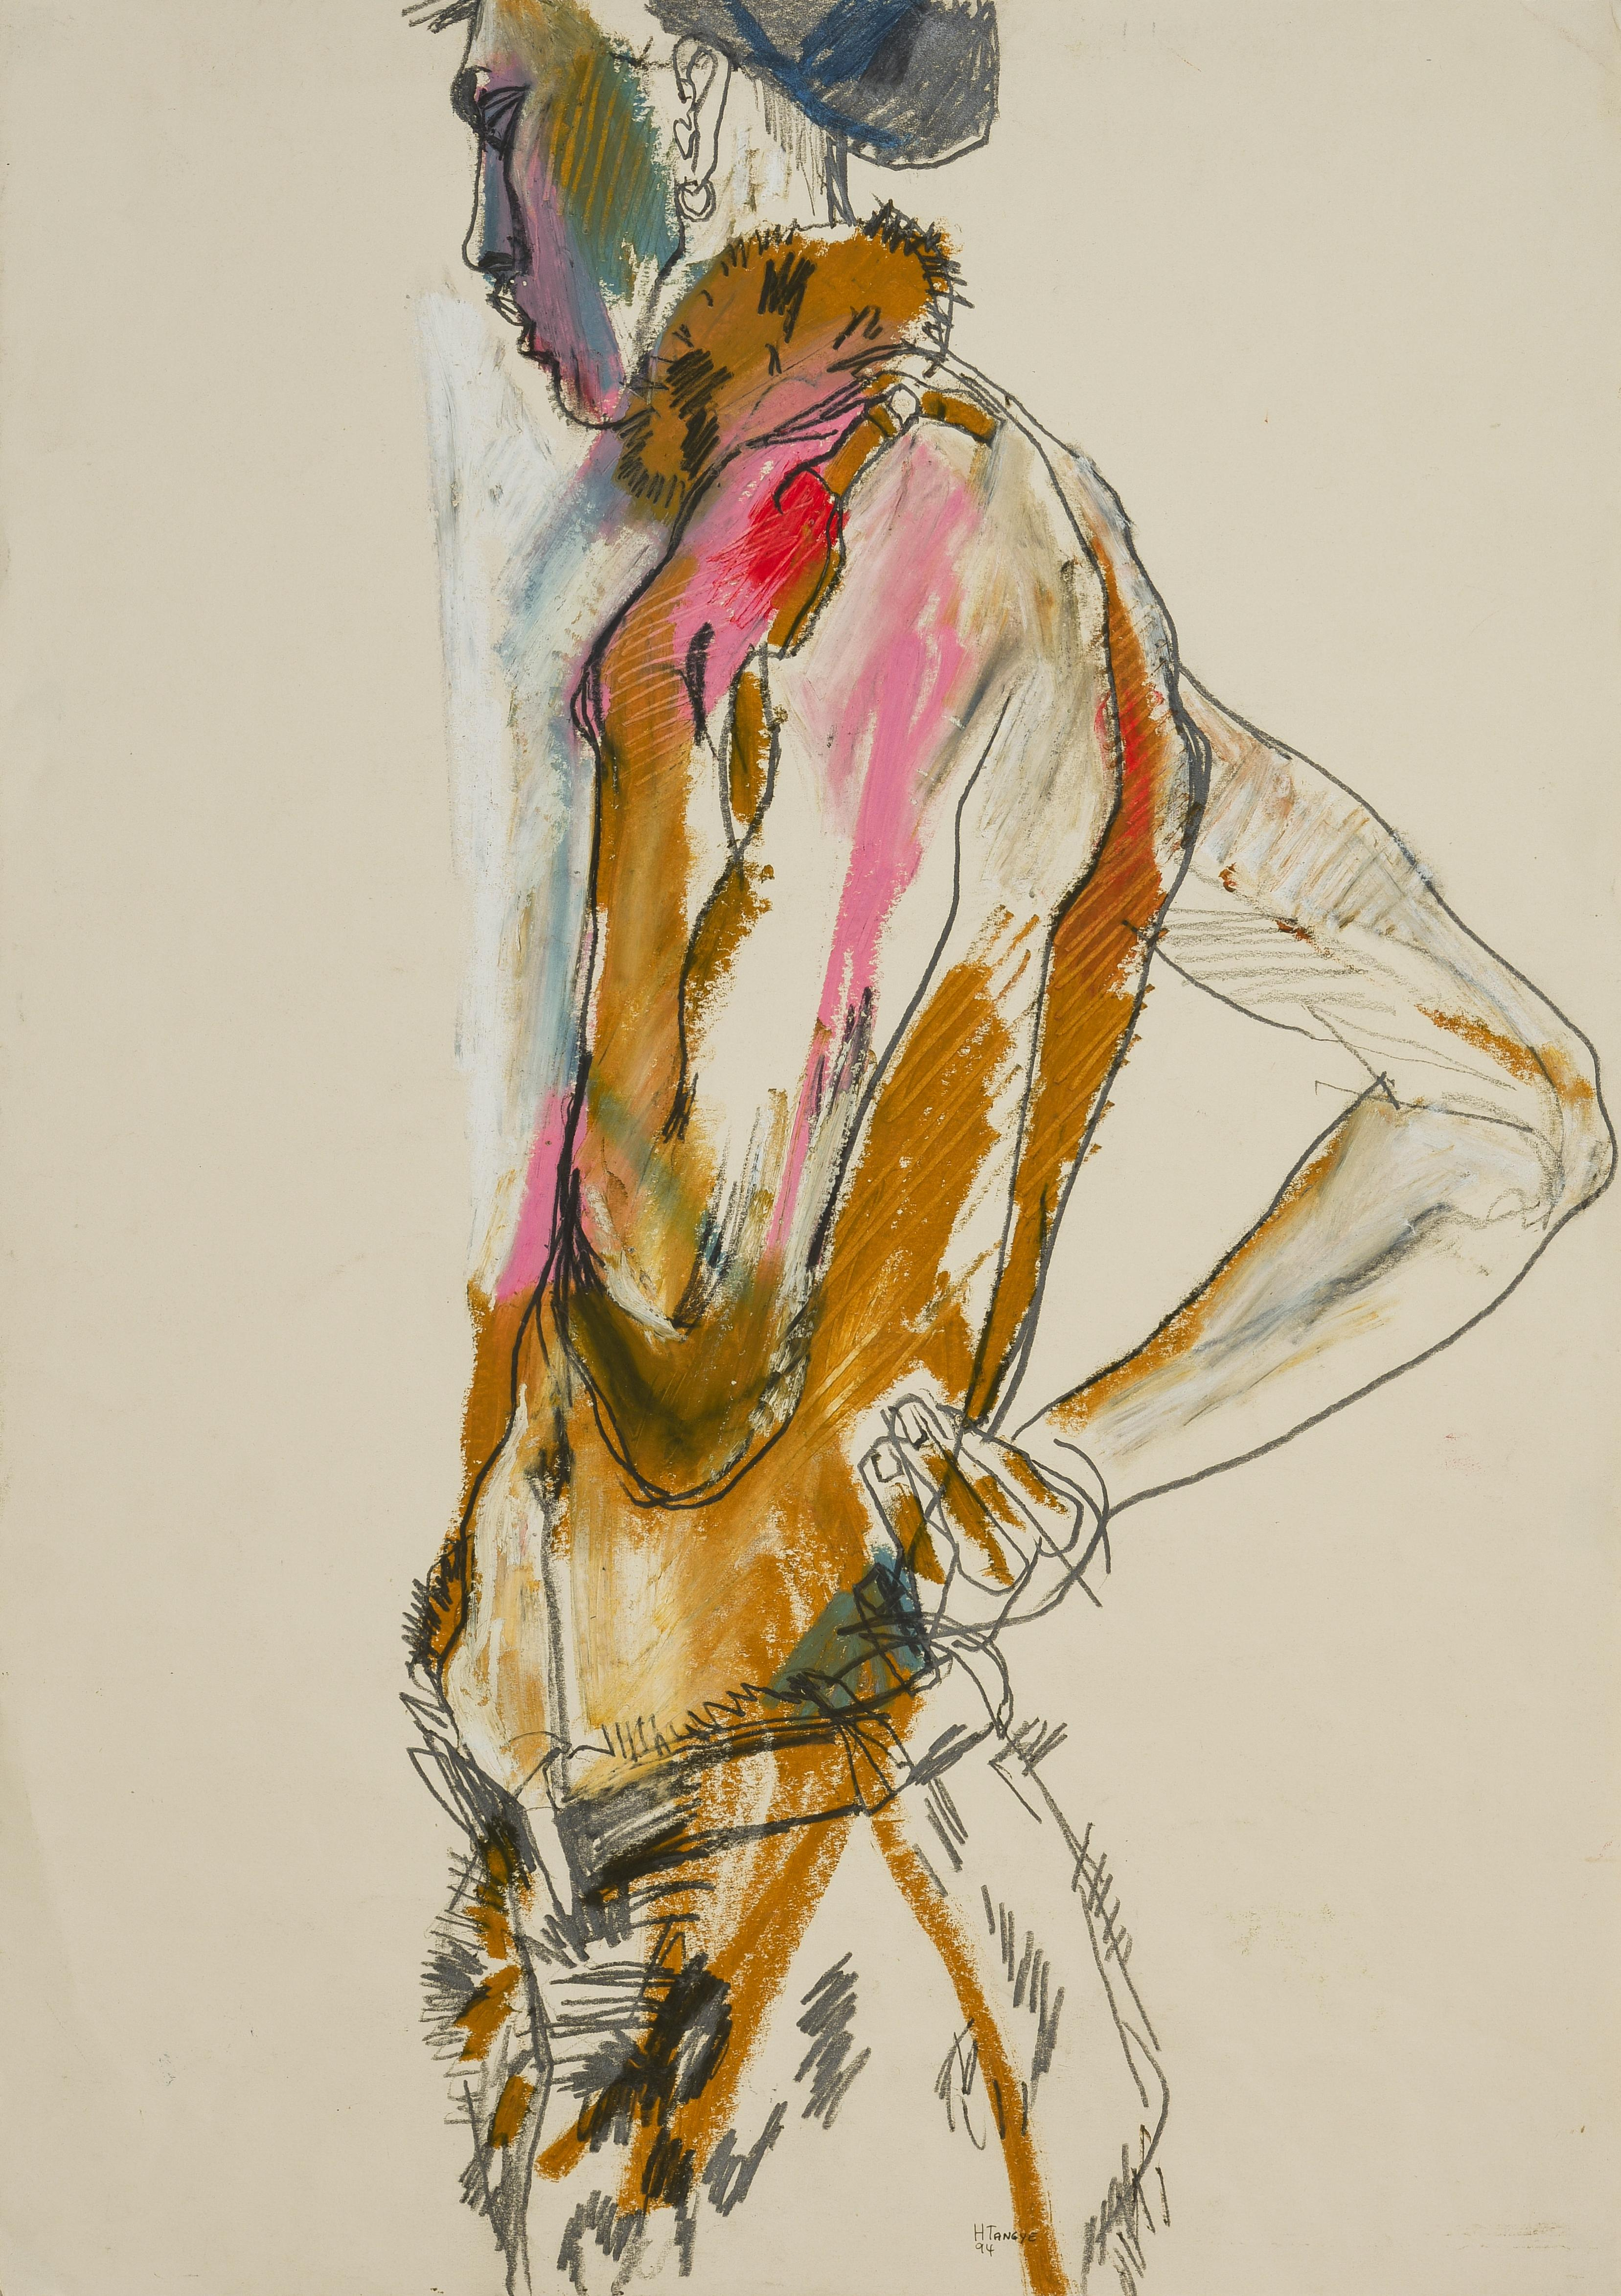 Stephan (Half Figure, Standing), Mixed media on paper